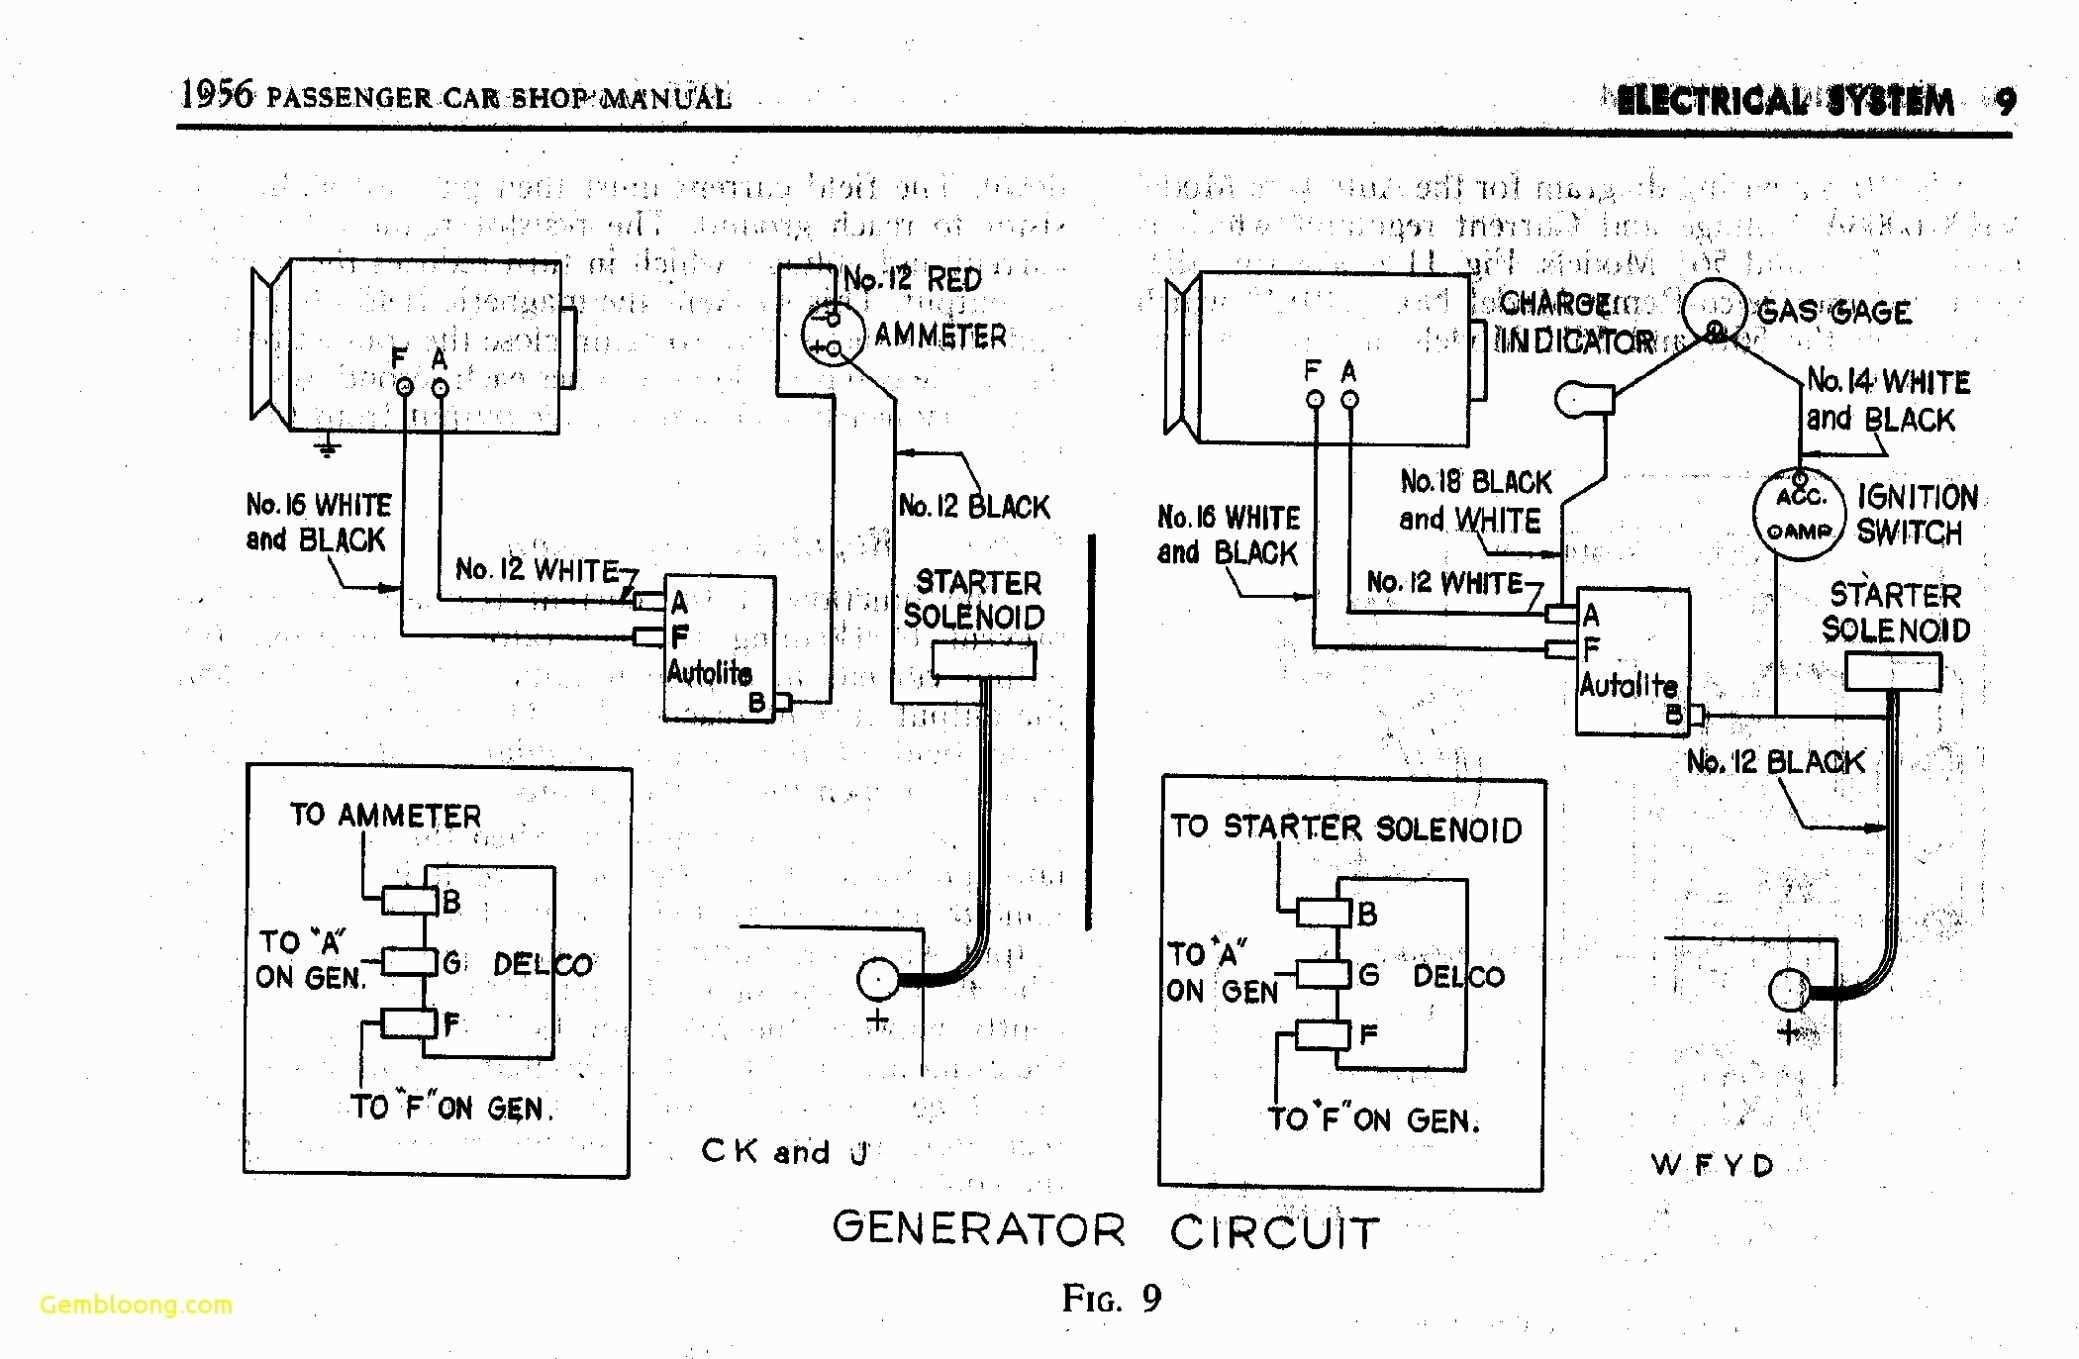 Unique Wiring Diagram Manual Aircraft  Diagramsample